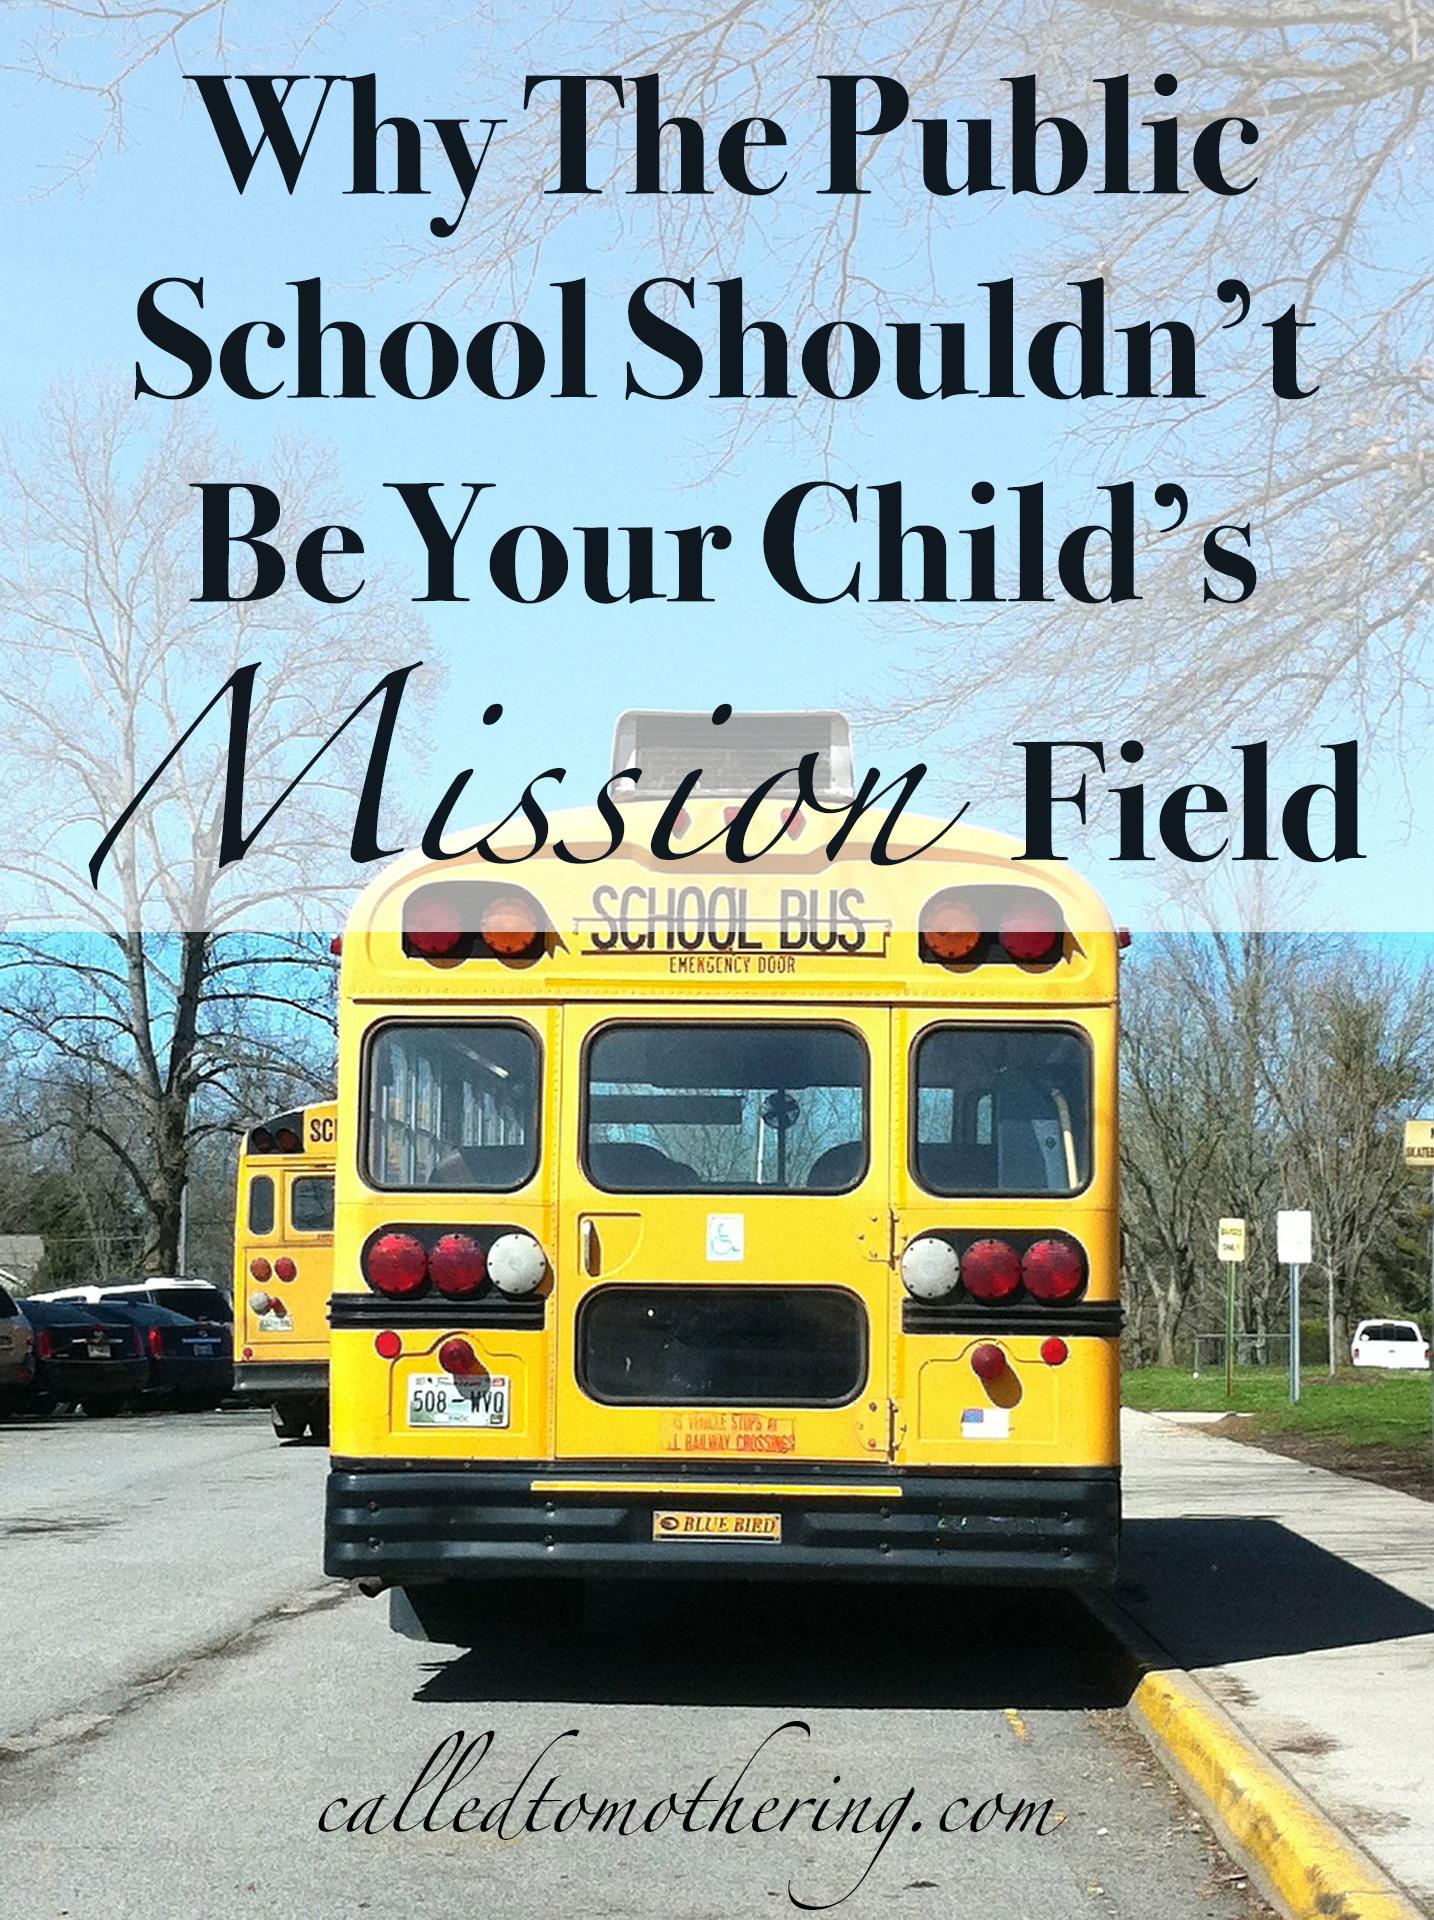 Why The Public School Shouldn't Be Your Child's Mission Field